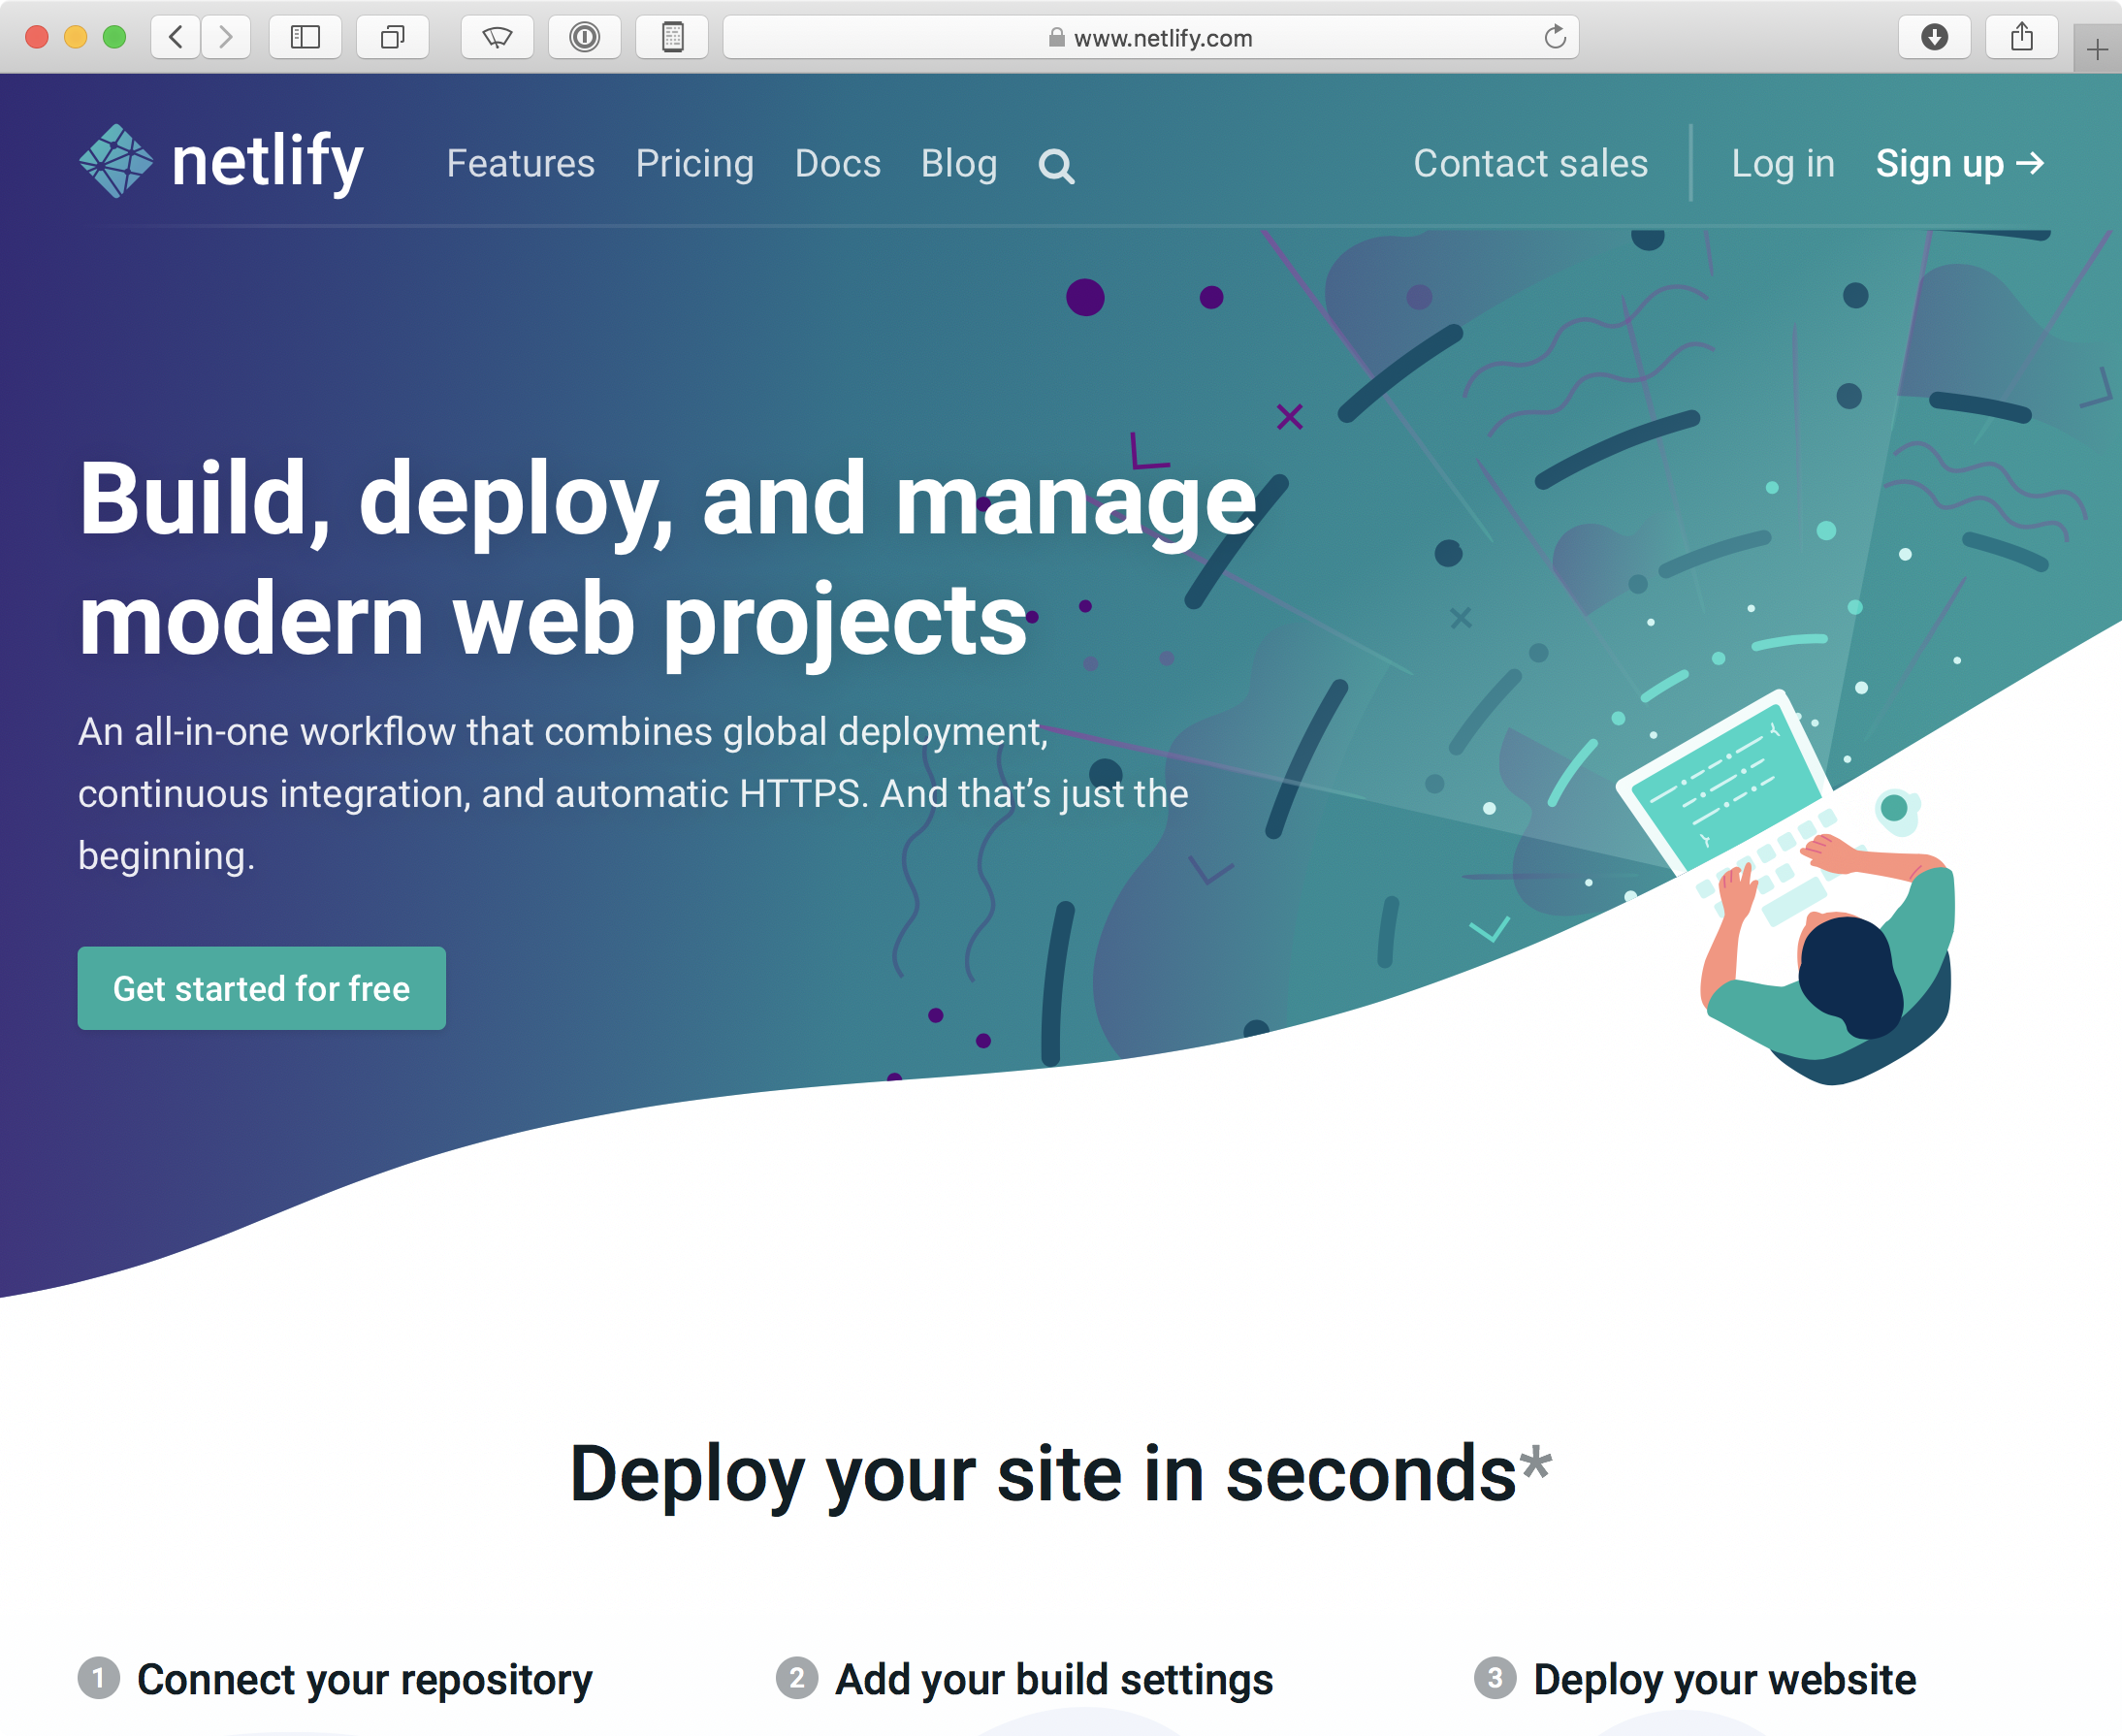 Screenshot of Netlify website